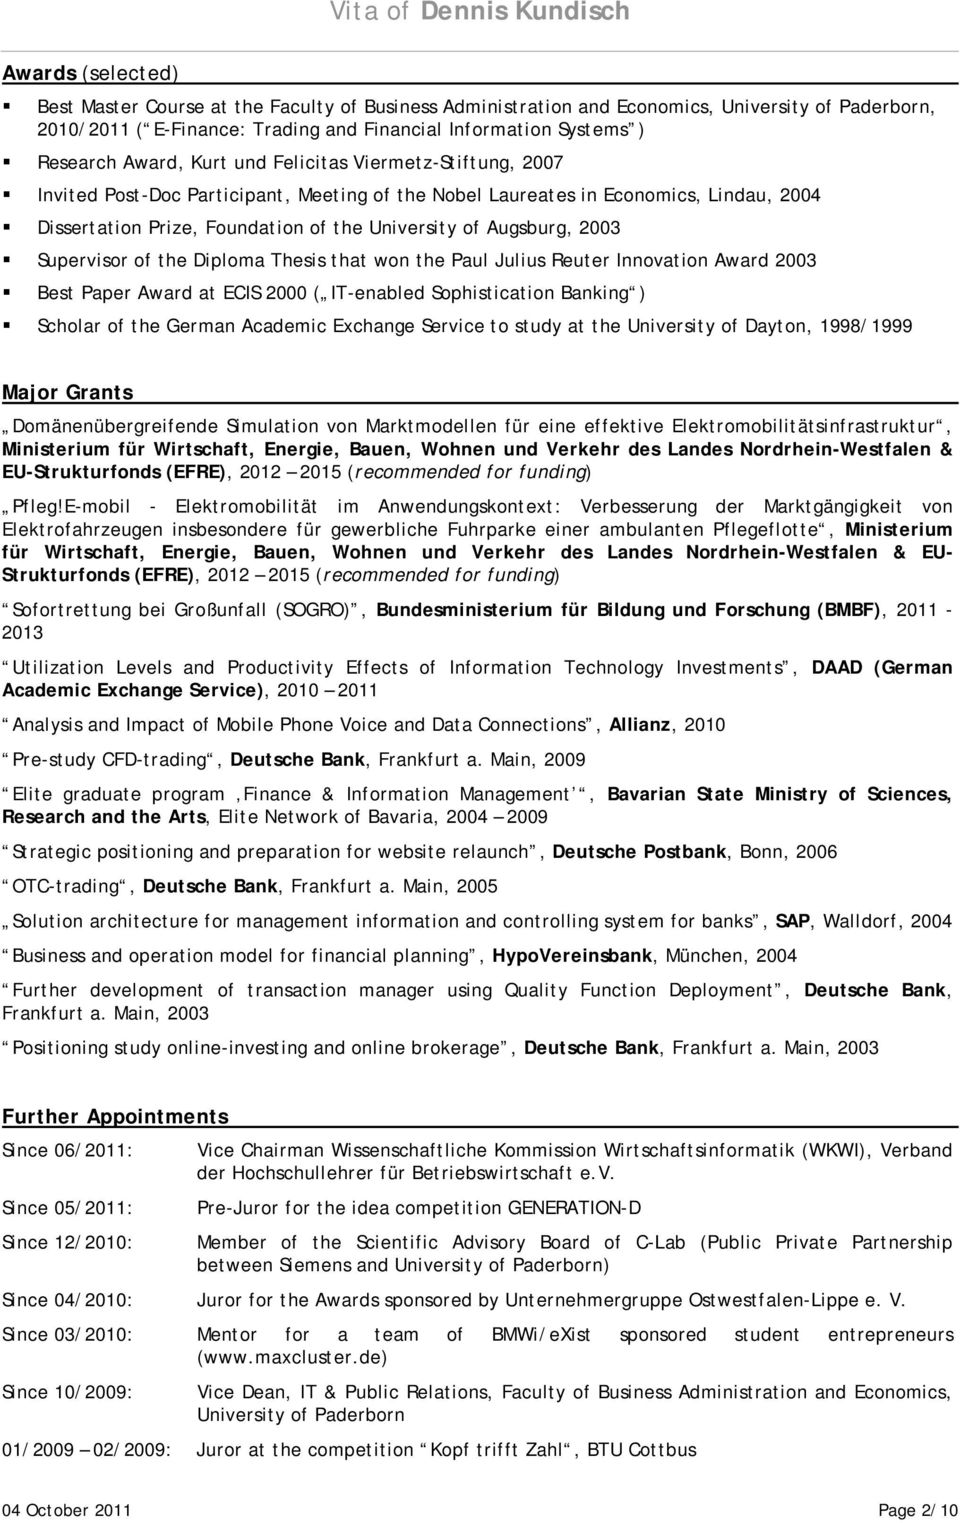 University of Augsburg, 2003 Supervisor of the Diploma Thesis that won the Paul Julius Reuter Innovation Award 2003 Best Paper Award at ECIS 2000 ( IT-enabled Sophistication Banking ) Scholar of the